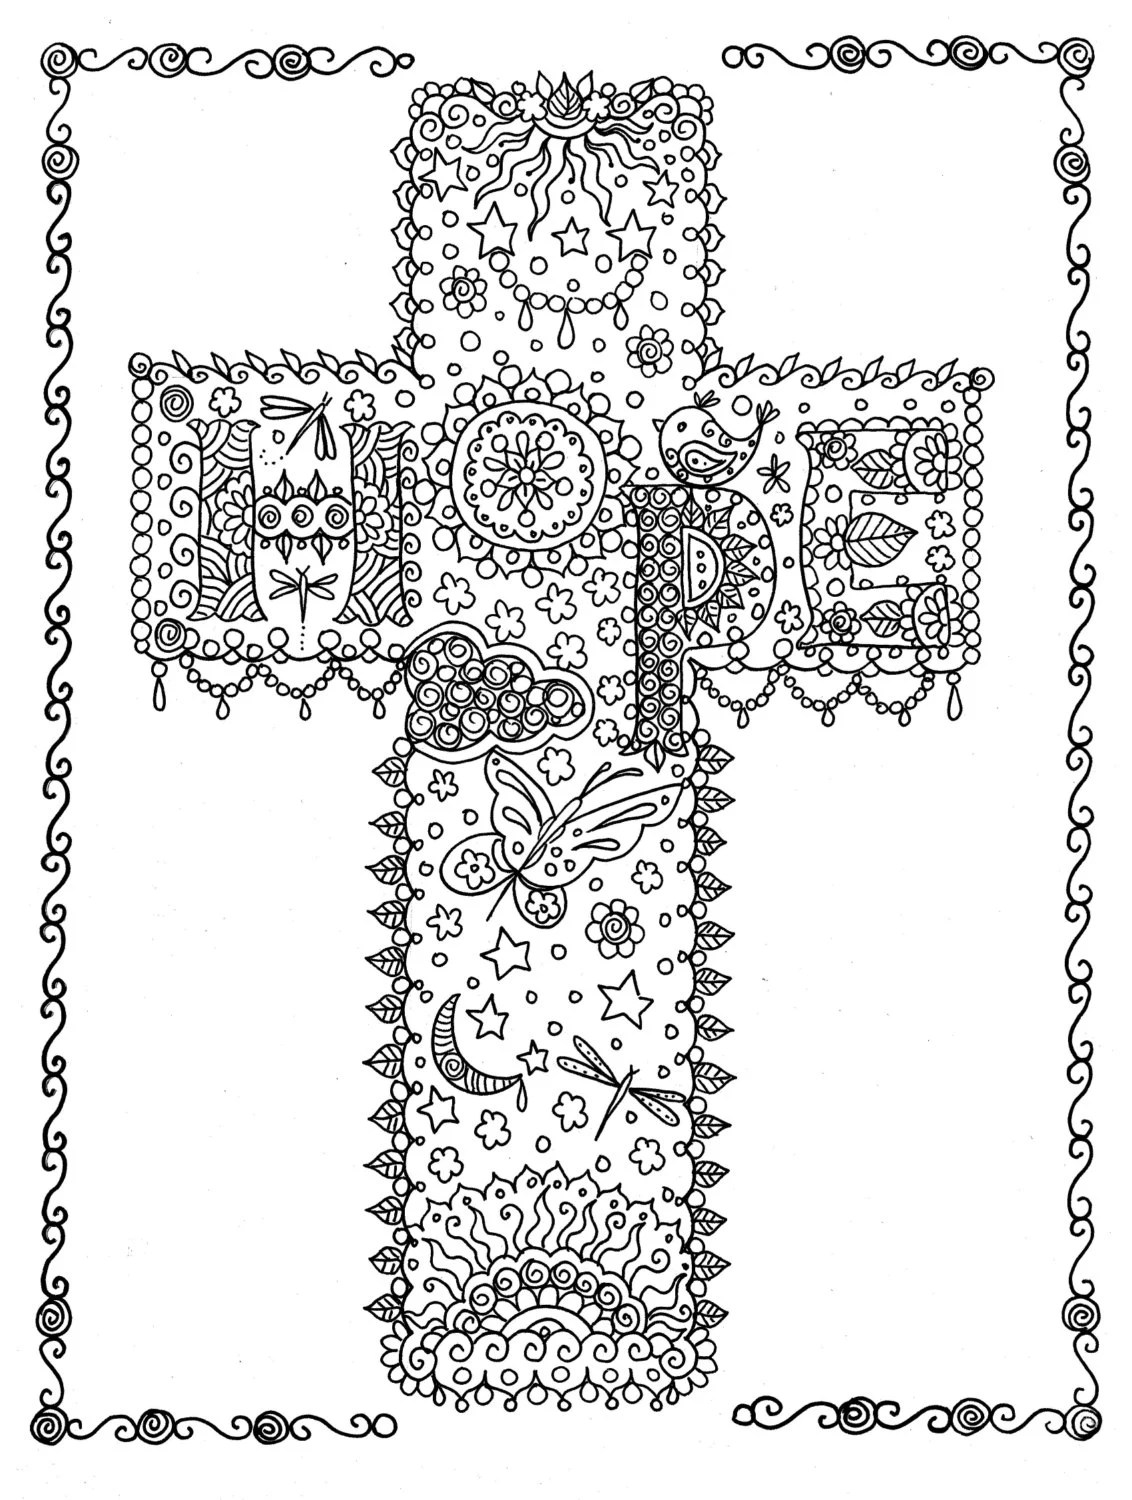 HOPE Cross Digital Coloring Page Instant Download from Crosses